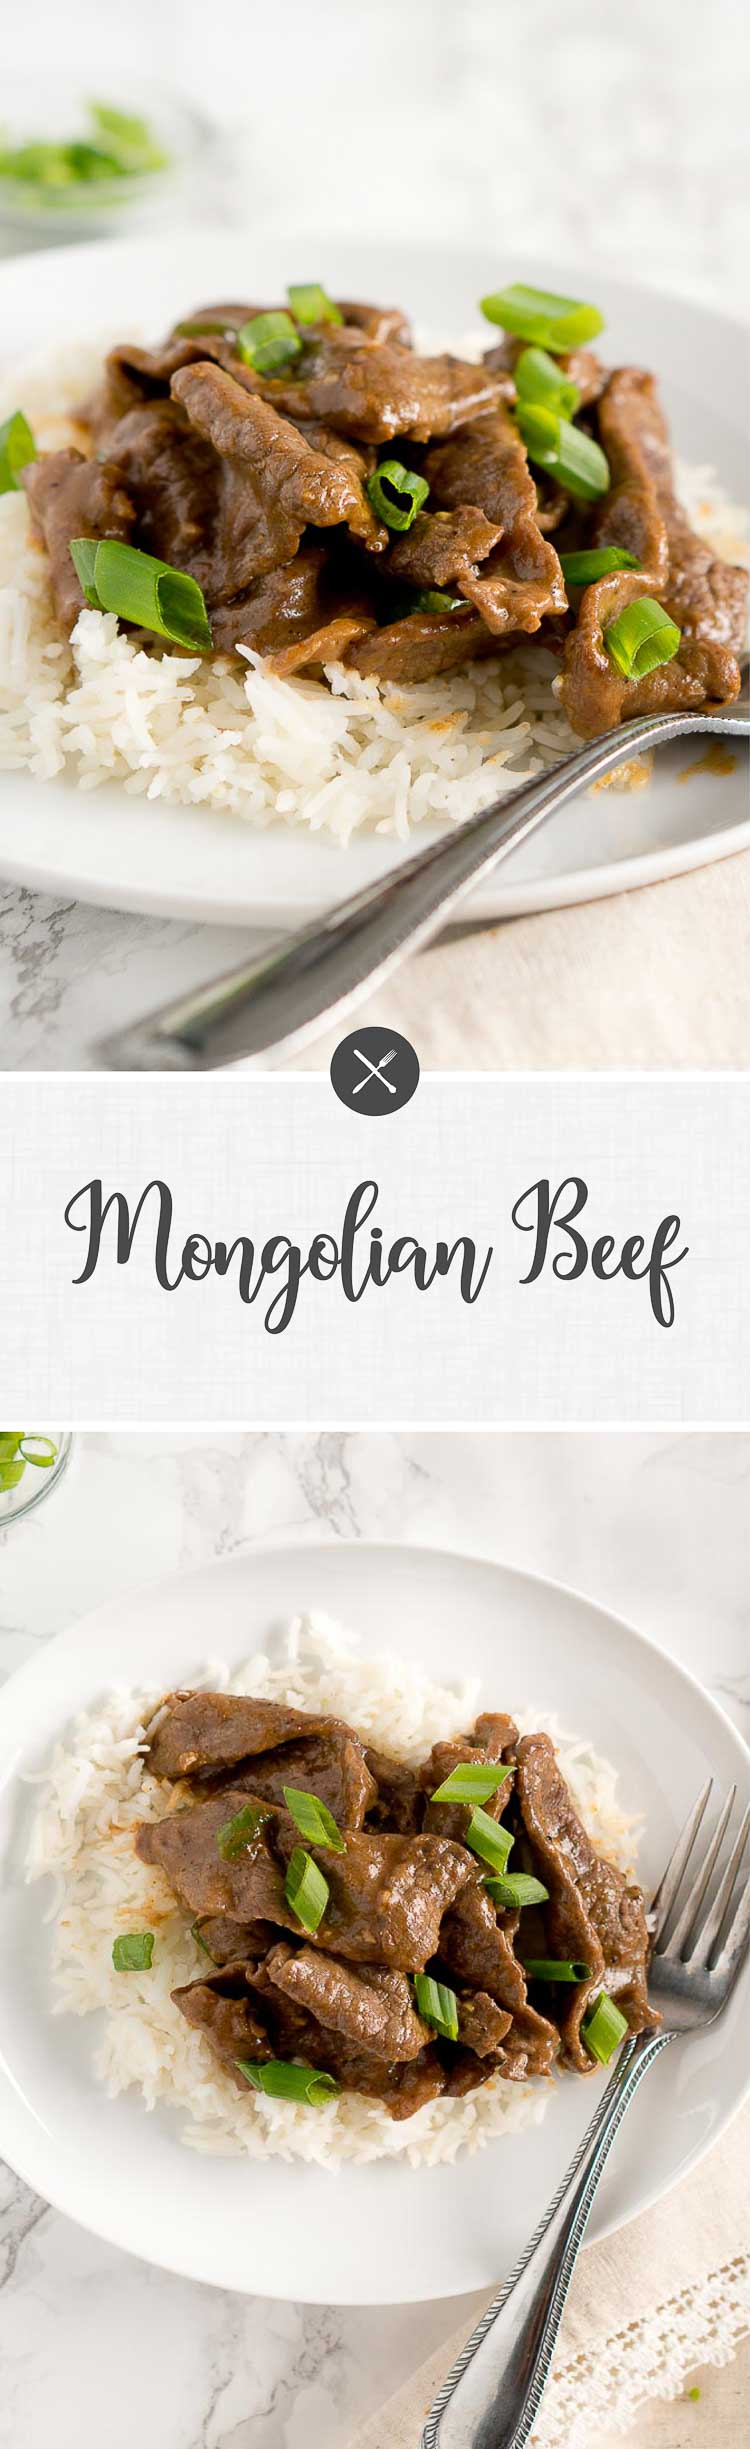 Authentic Mongolian Beef recipe made healthy. It's very easy to prepare and takes only about 5 minutes to cook and 20 minutes to marinate the steak. #30minutes #onepanmeals #onepot #easyrecipes #easydinner #healthydinner